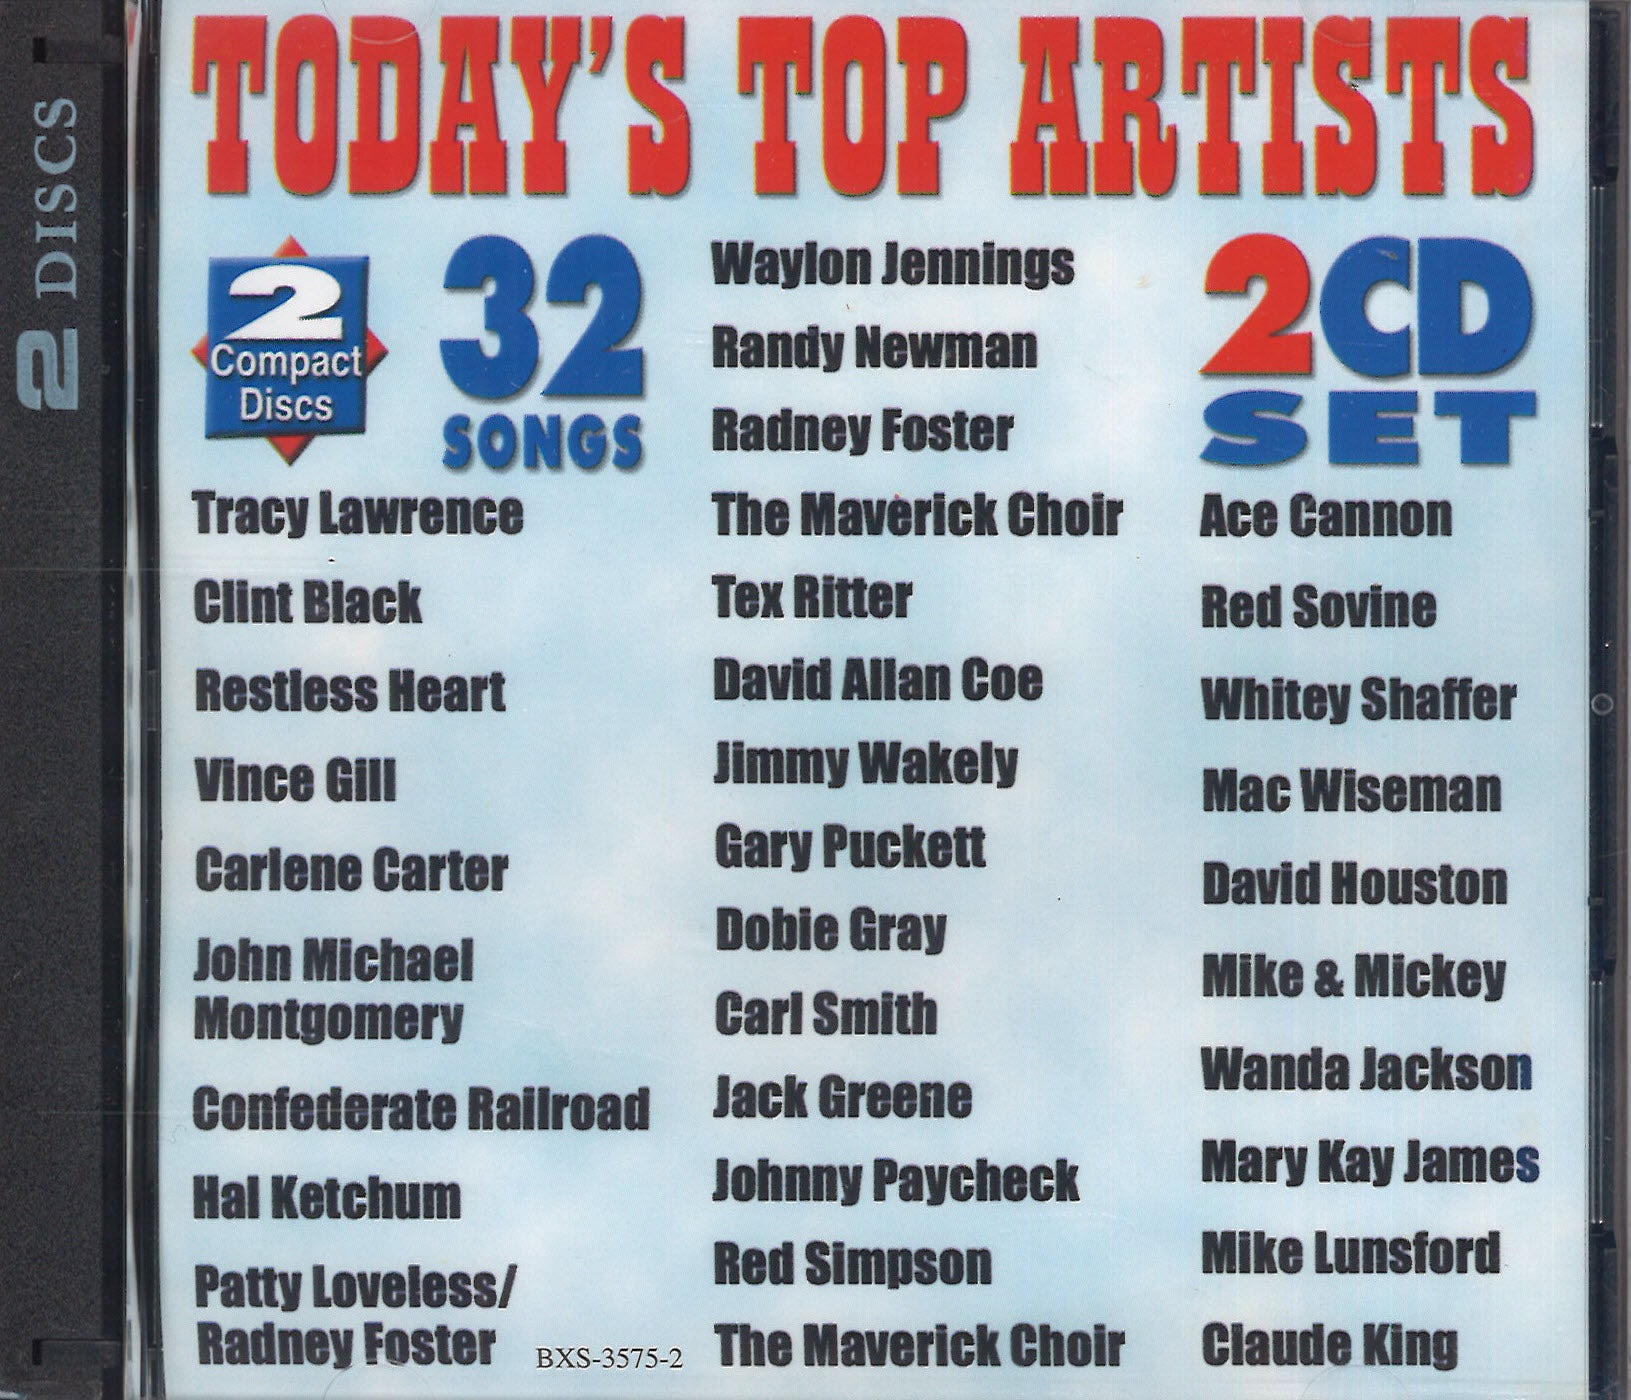 Various Artists Today's Top Artists: 2 CD Set